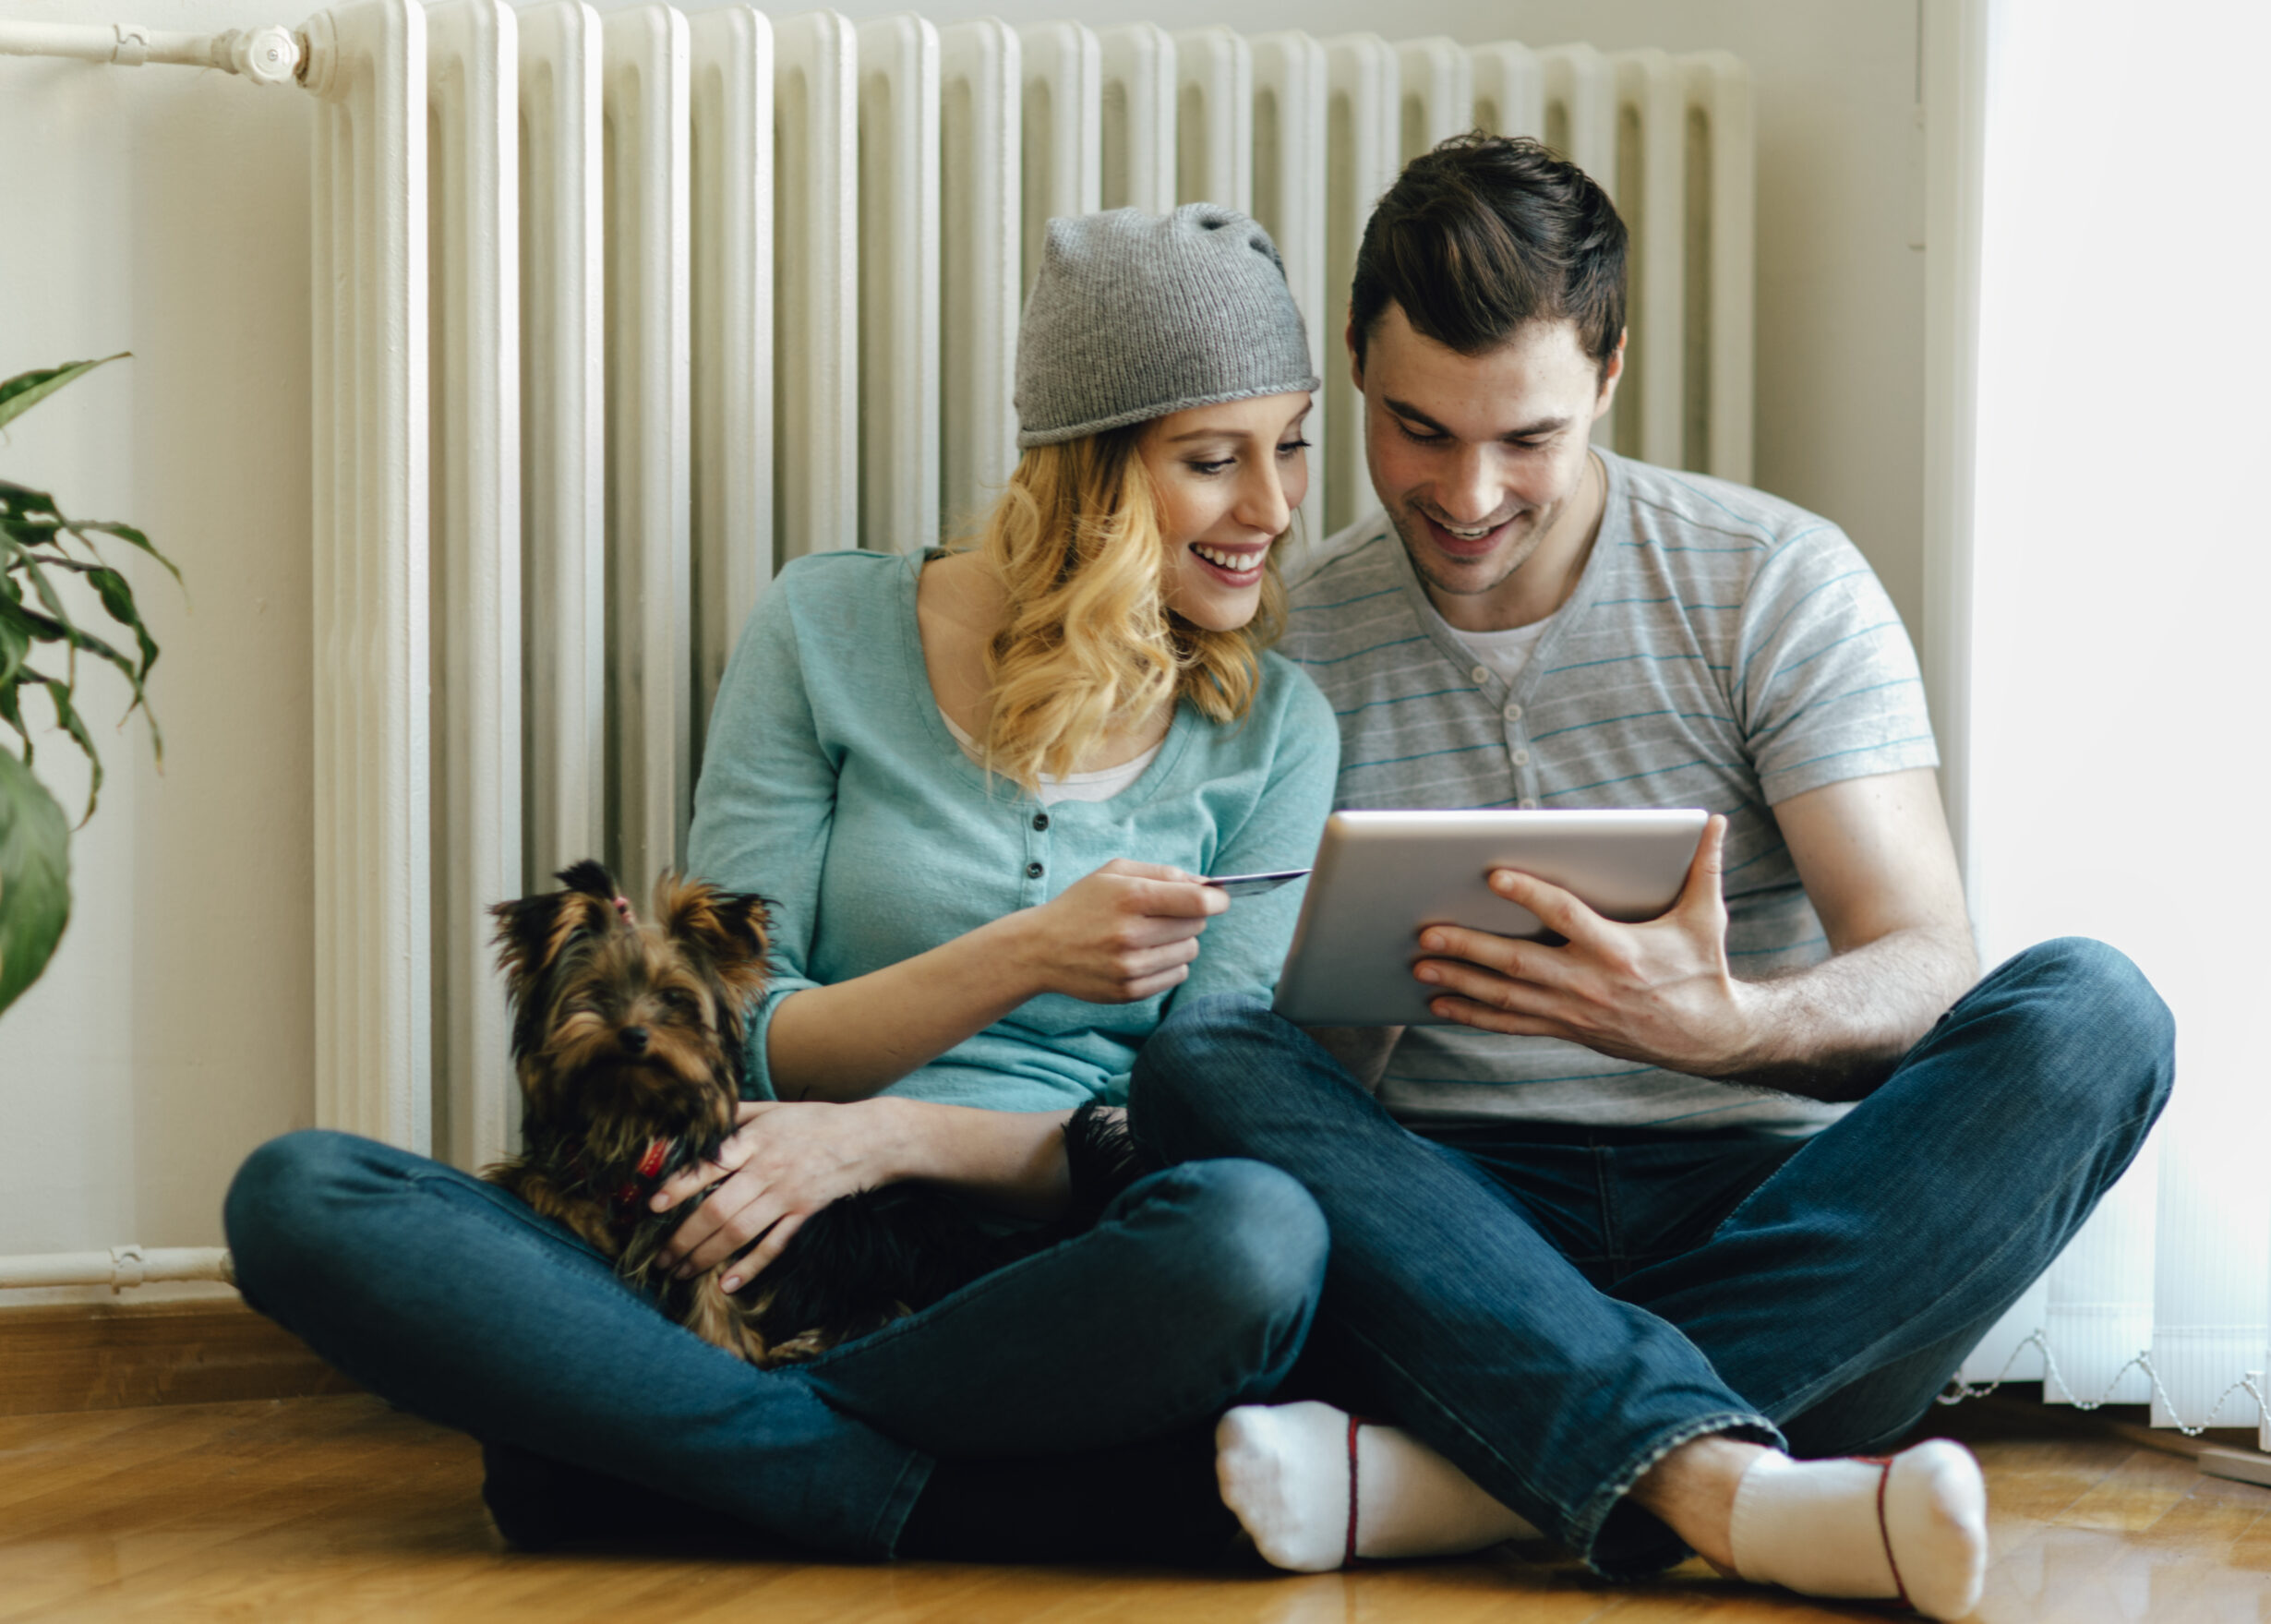 Young Couple Sitting On Floor in a living room at home and shopping online with digital tablet. Smiling woman with hat holding credit card, and man holding tablet and their cute dog on the lap. Their dog is female puppy of Yorkshire Terrier.